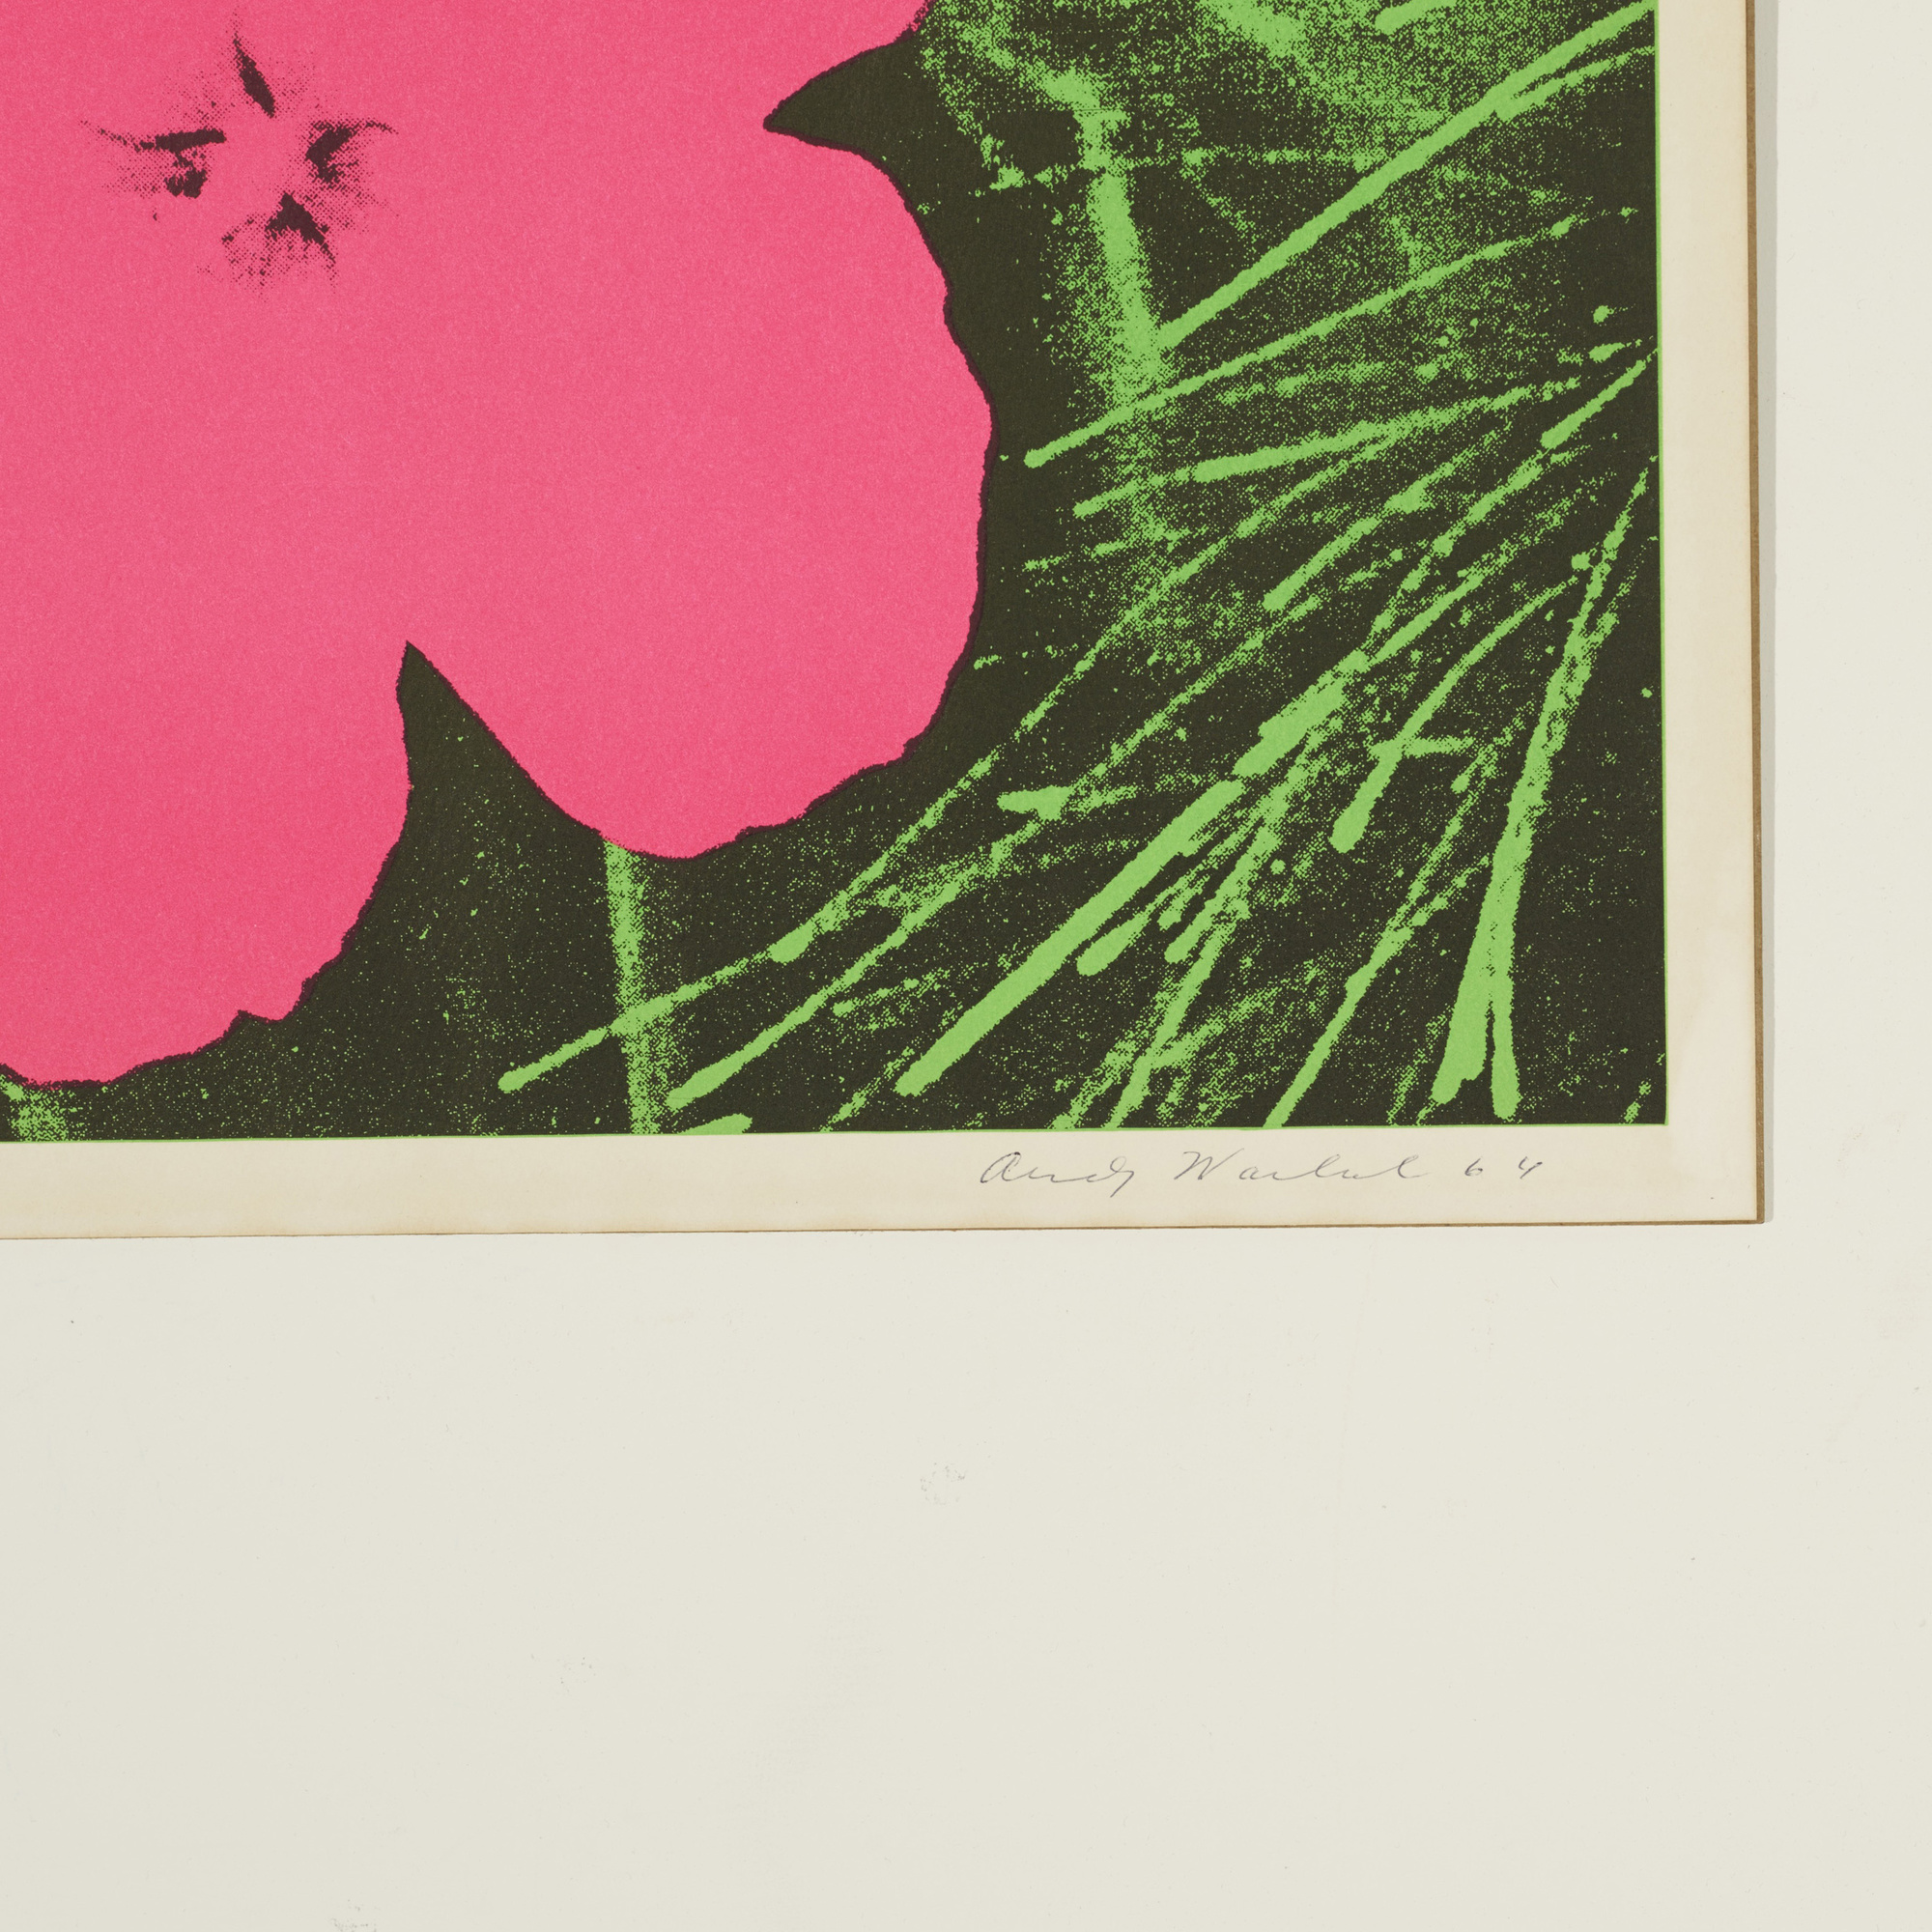 120: Andy Warhol / Flowers (2 of 2)